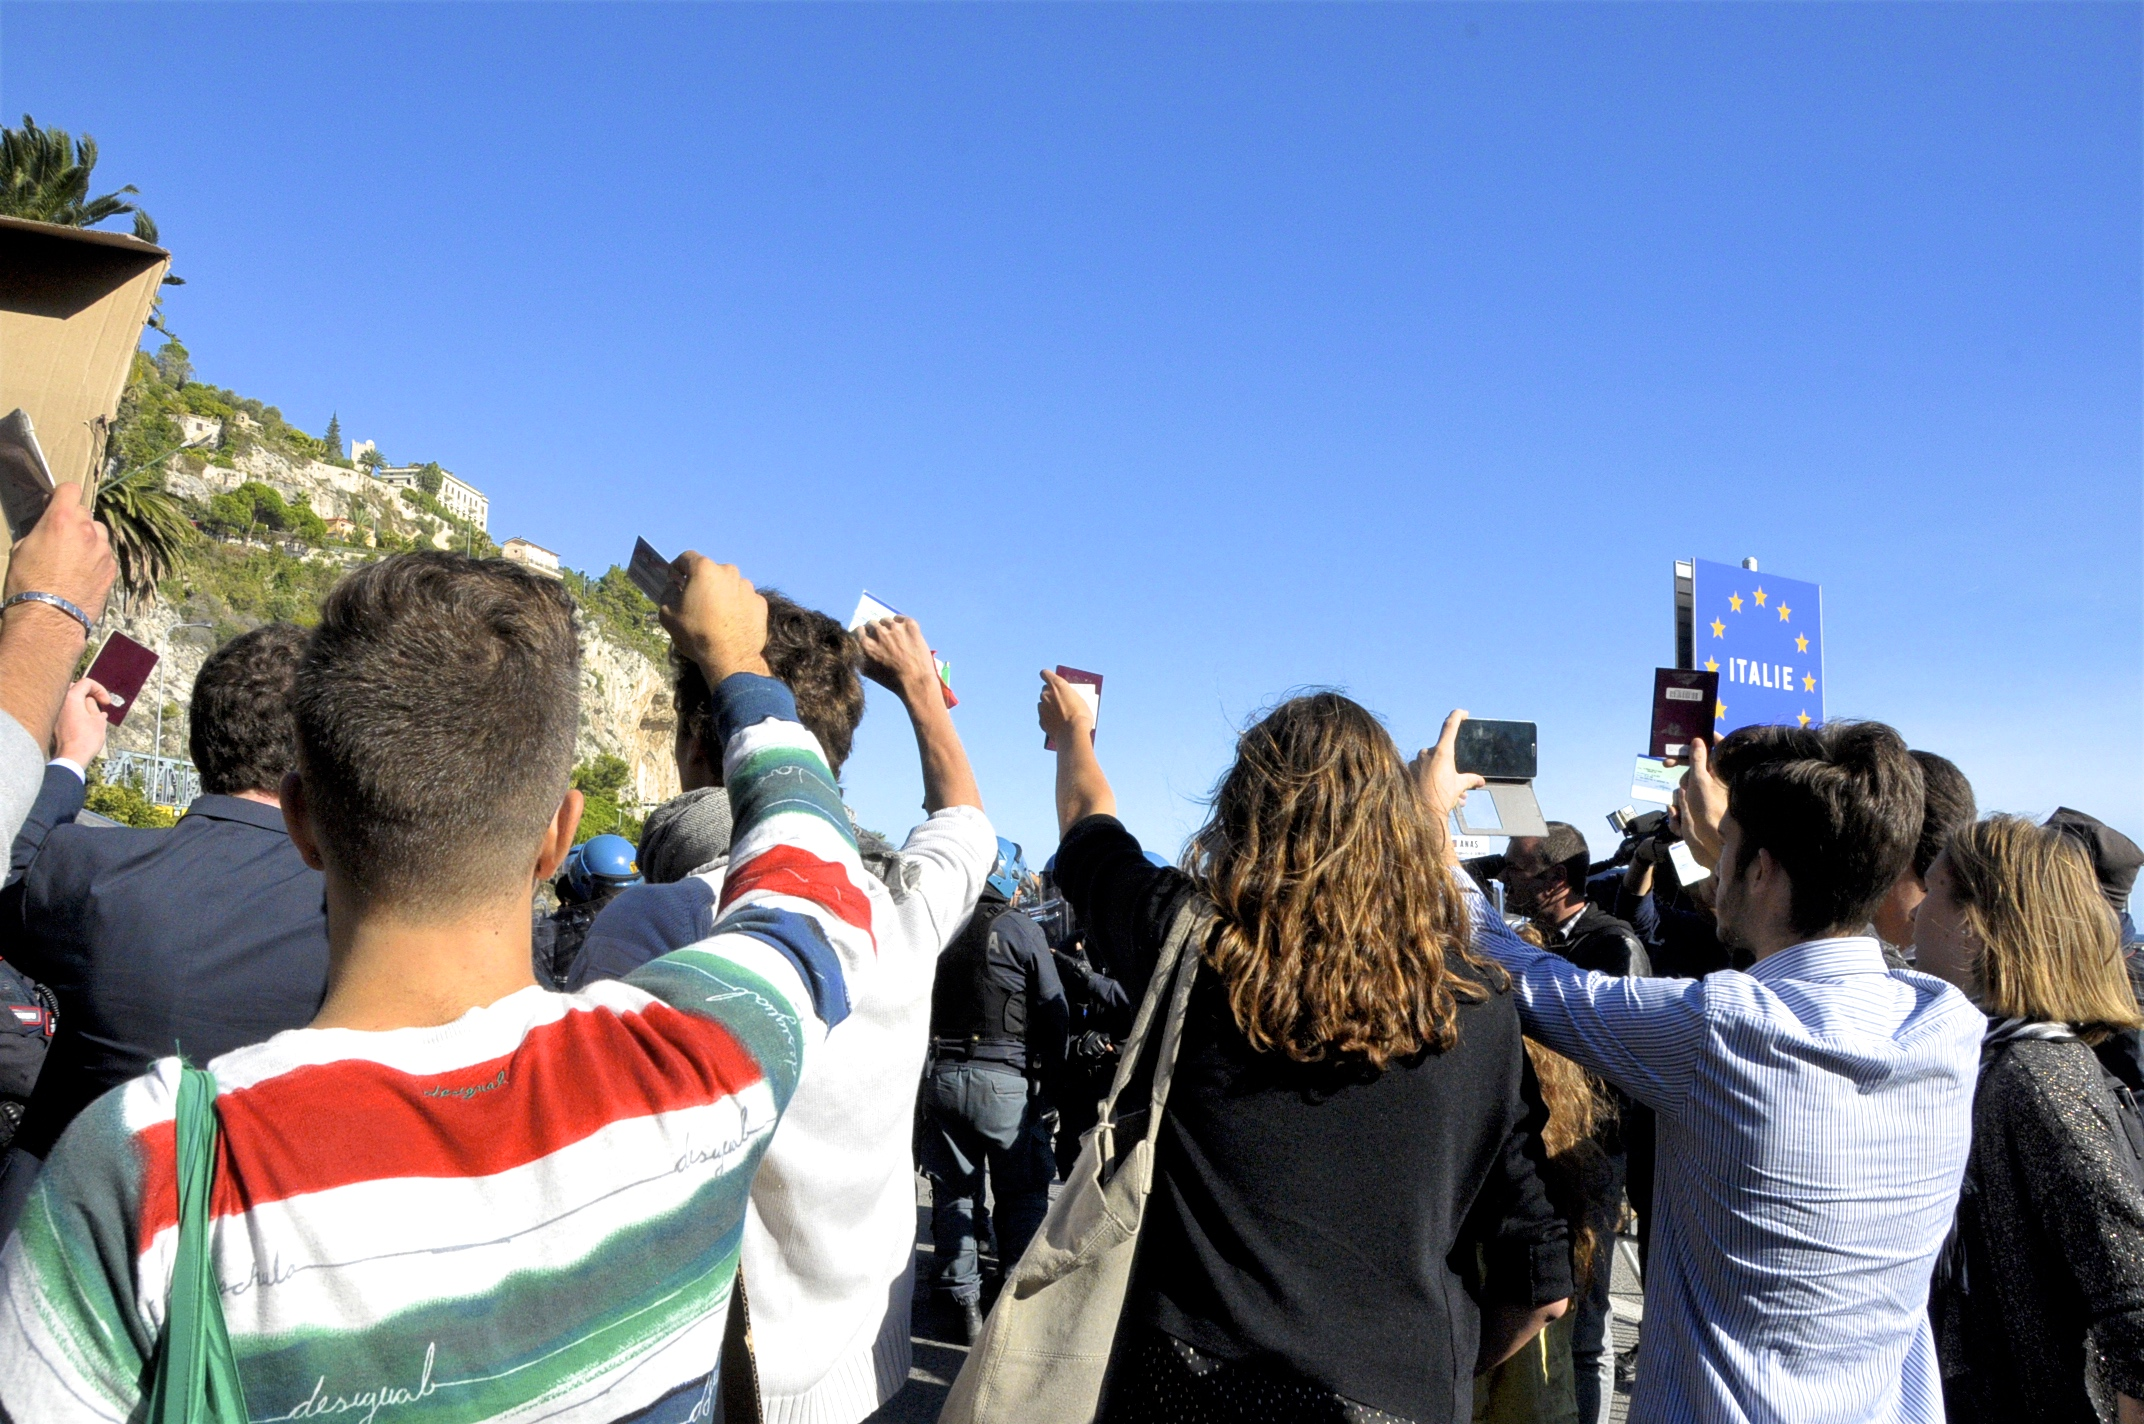 Students waving their identification at the French-Italian border, September 30th, 2015. Photo: Jacquelyn Rudich